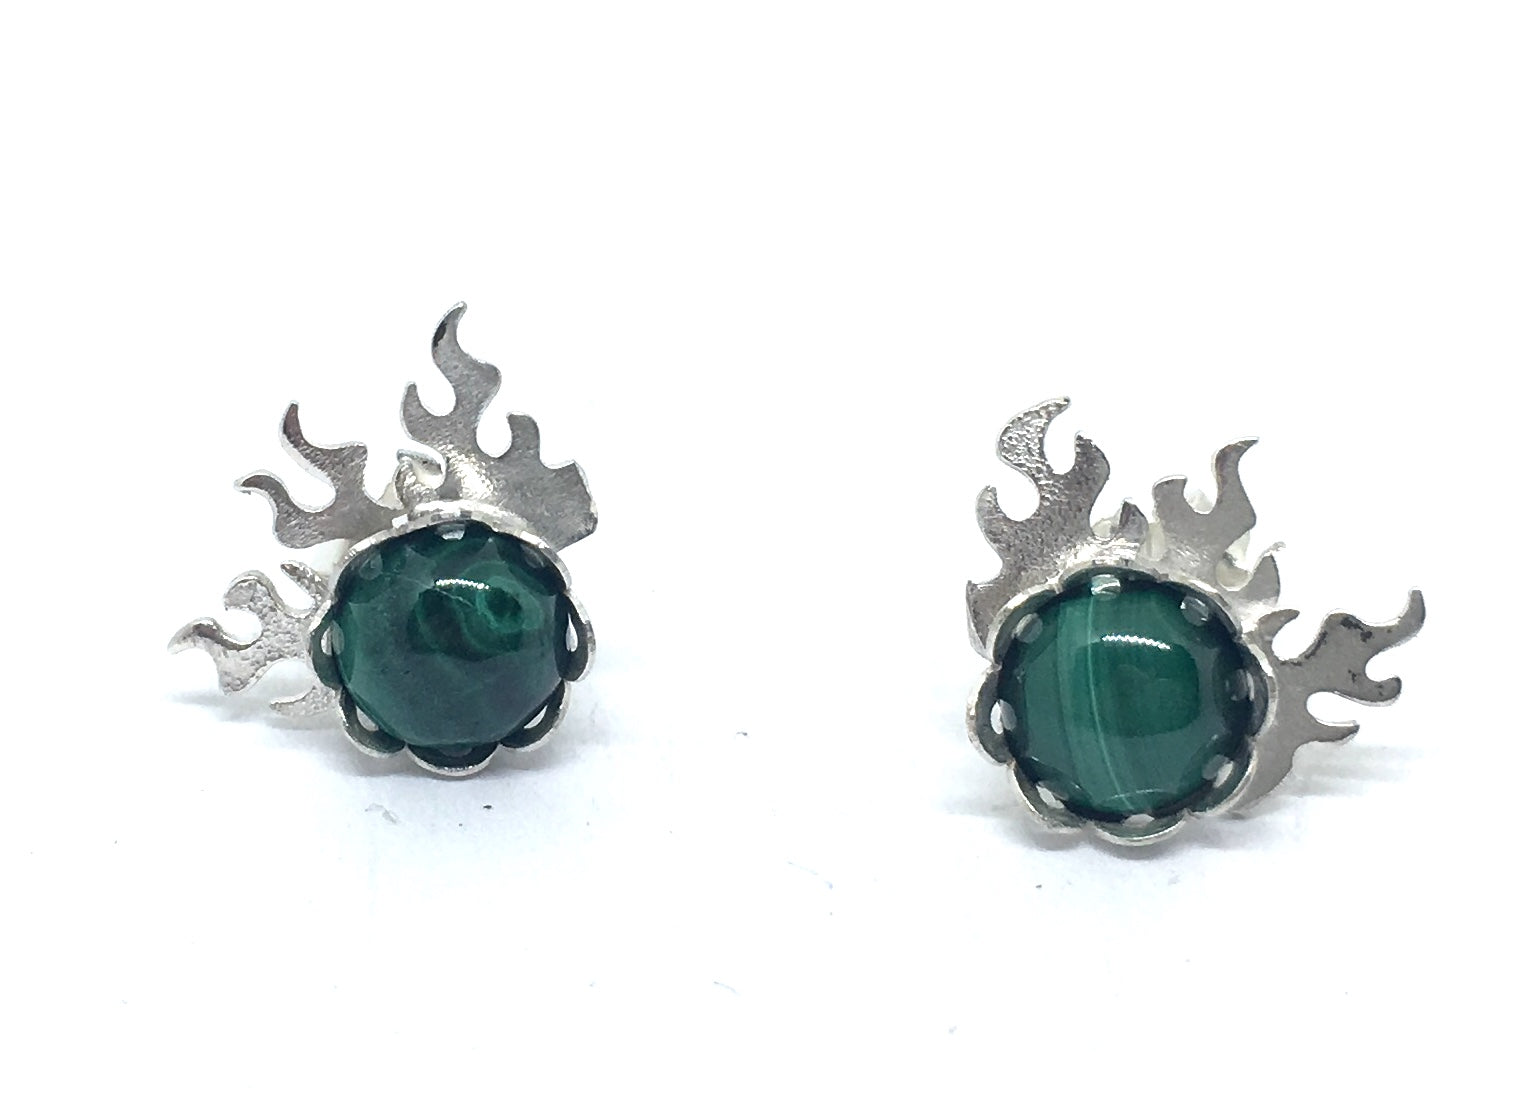 Malachite gems are in bezel settings, accented by flames